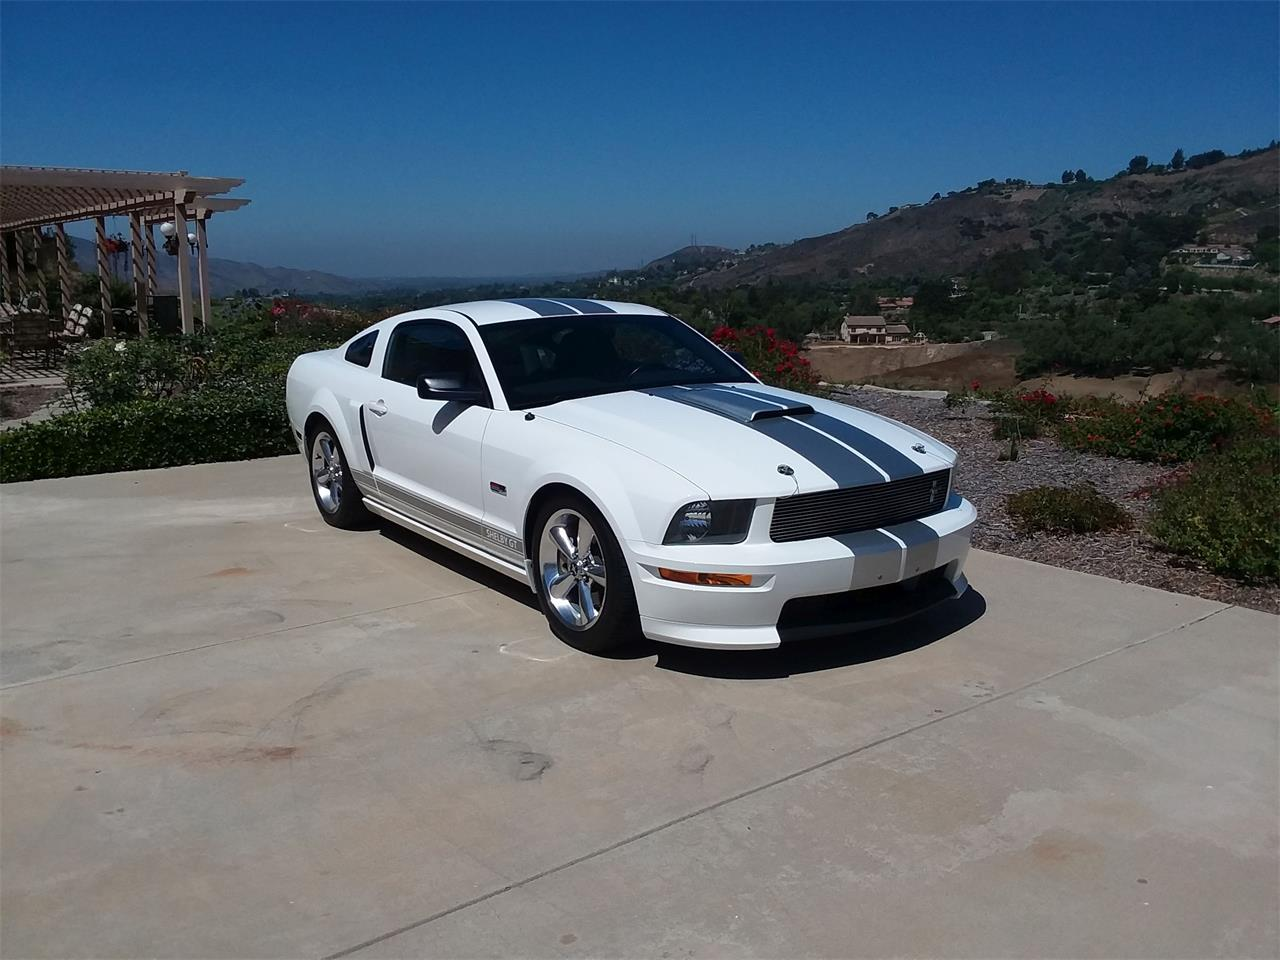 2007 Shelby GT for sale in Santa Rosa Valley, CA – photo 9